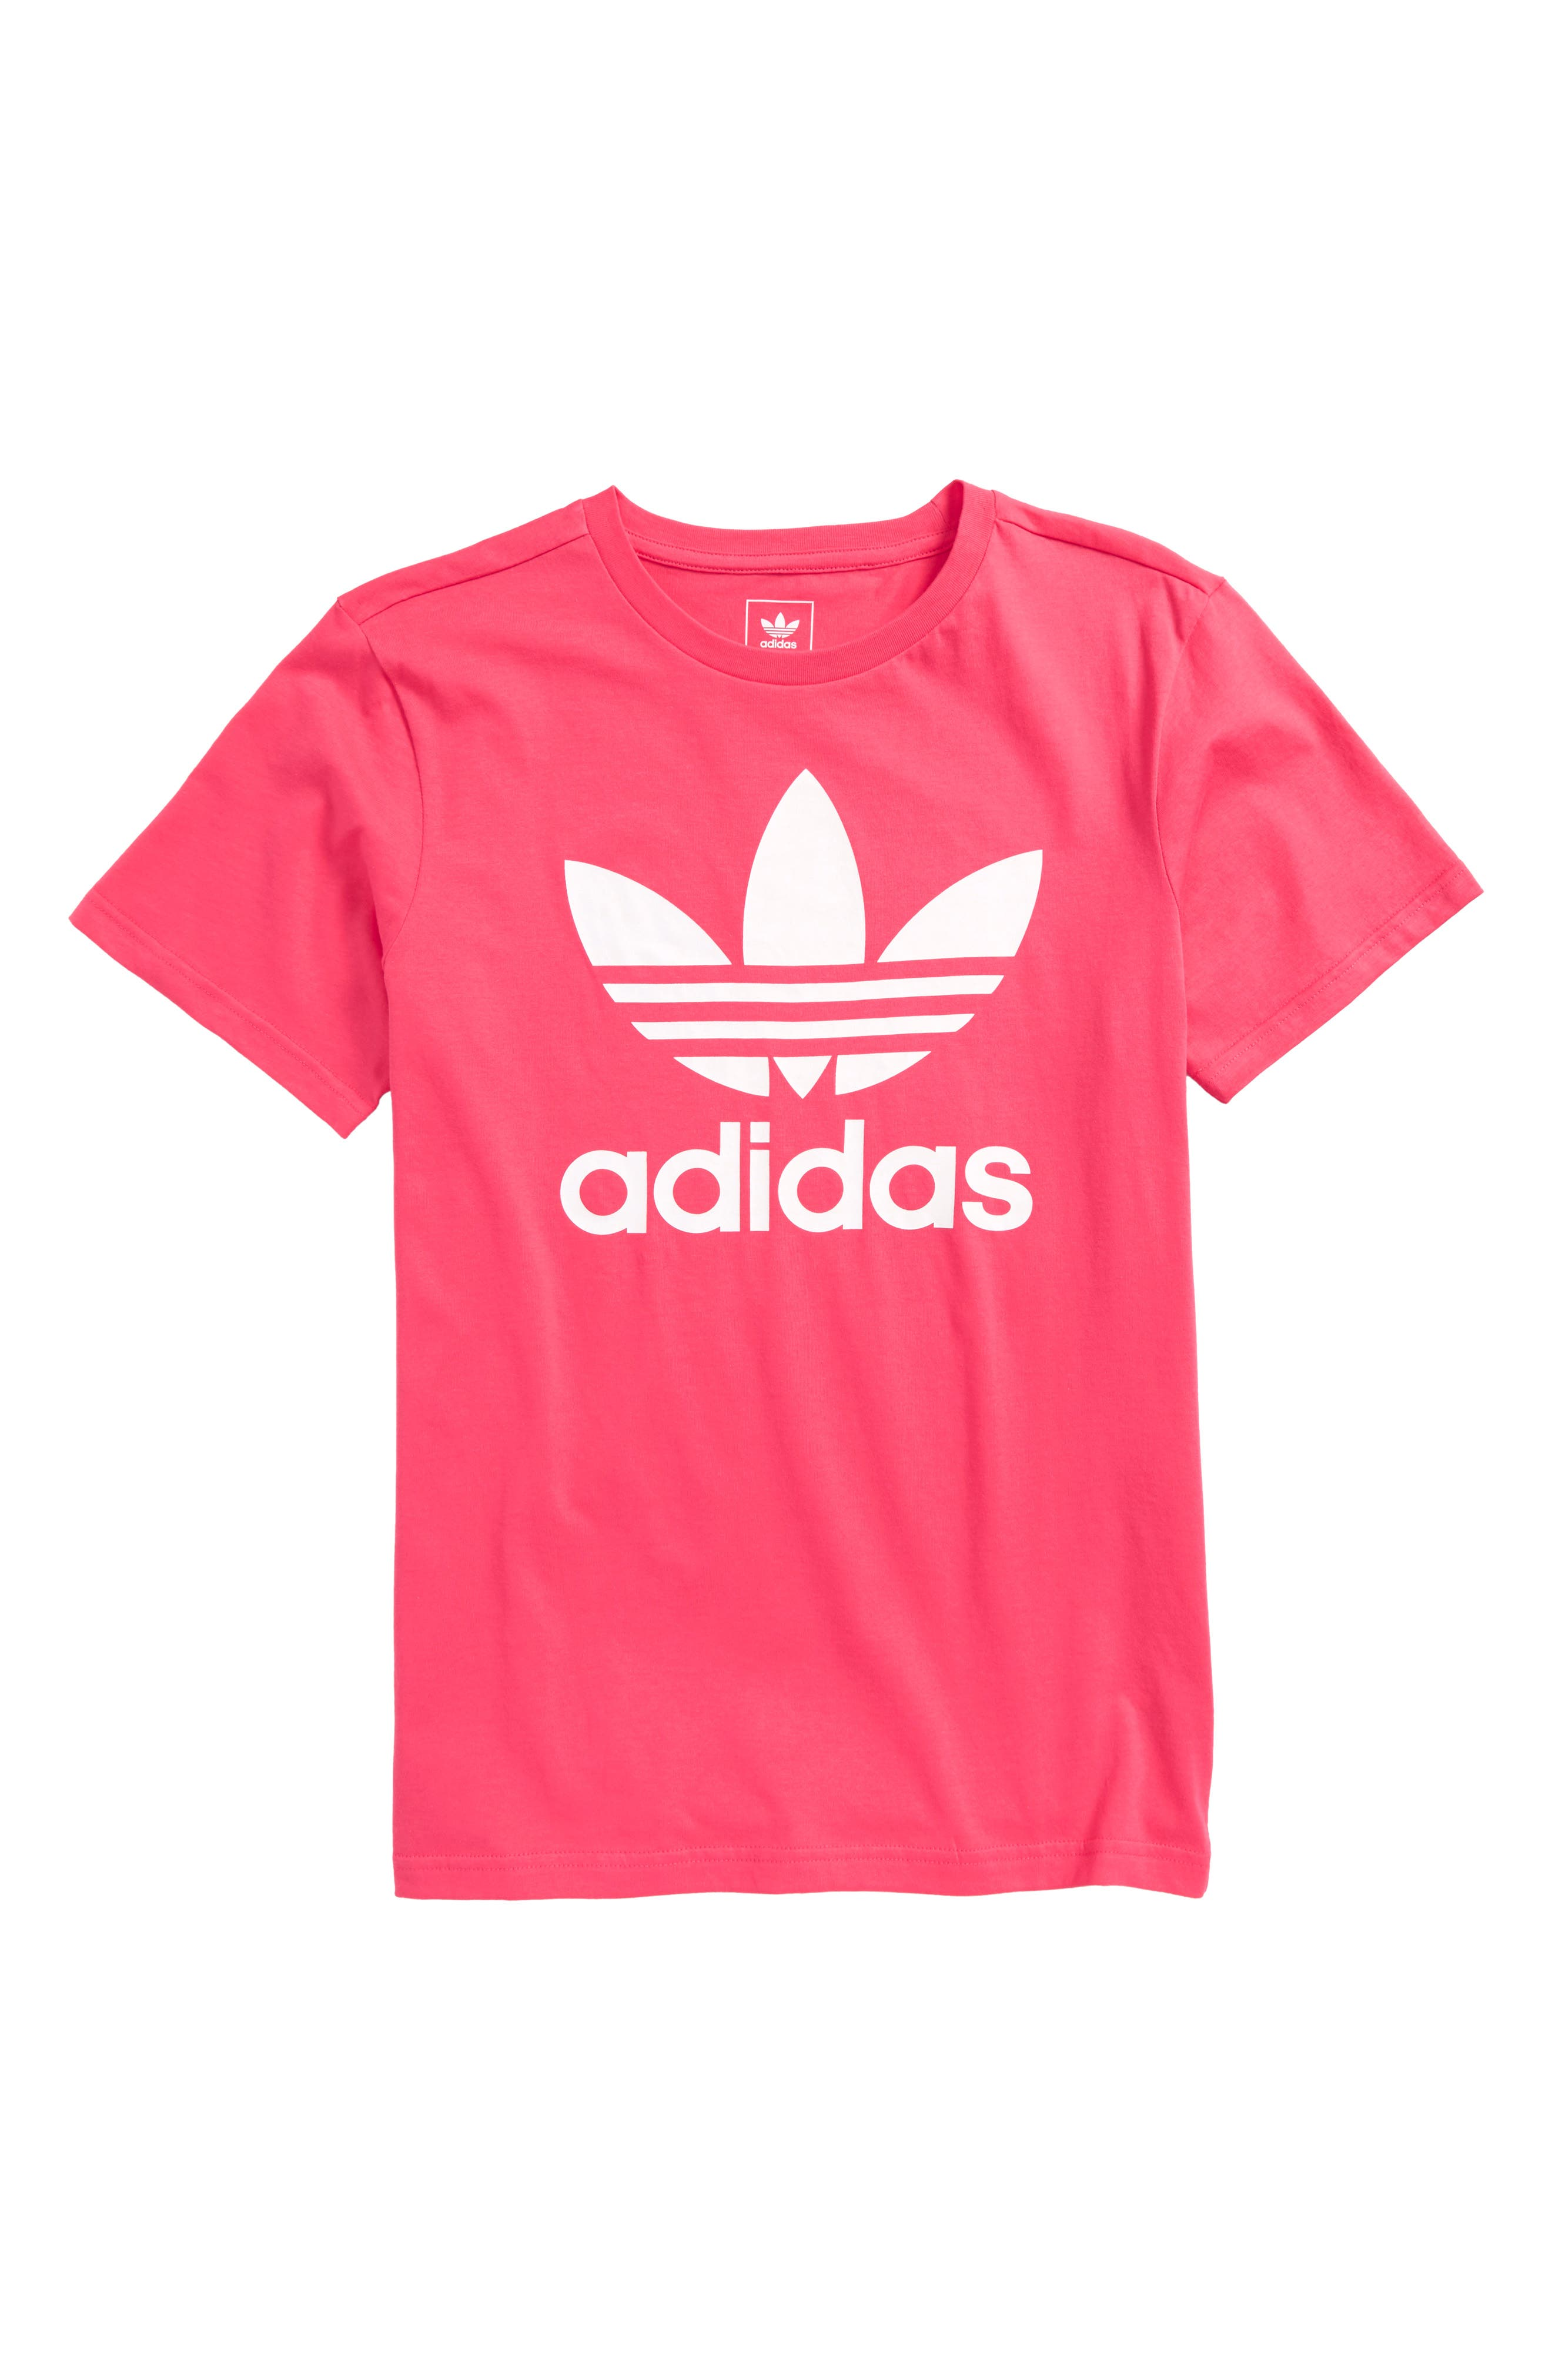 adidas Trefoil Tee,                             Main thumbnail 1, color,                             Real Pink / White